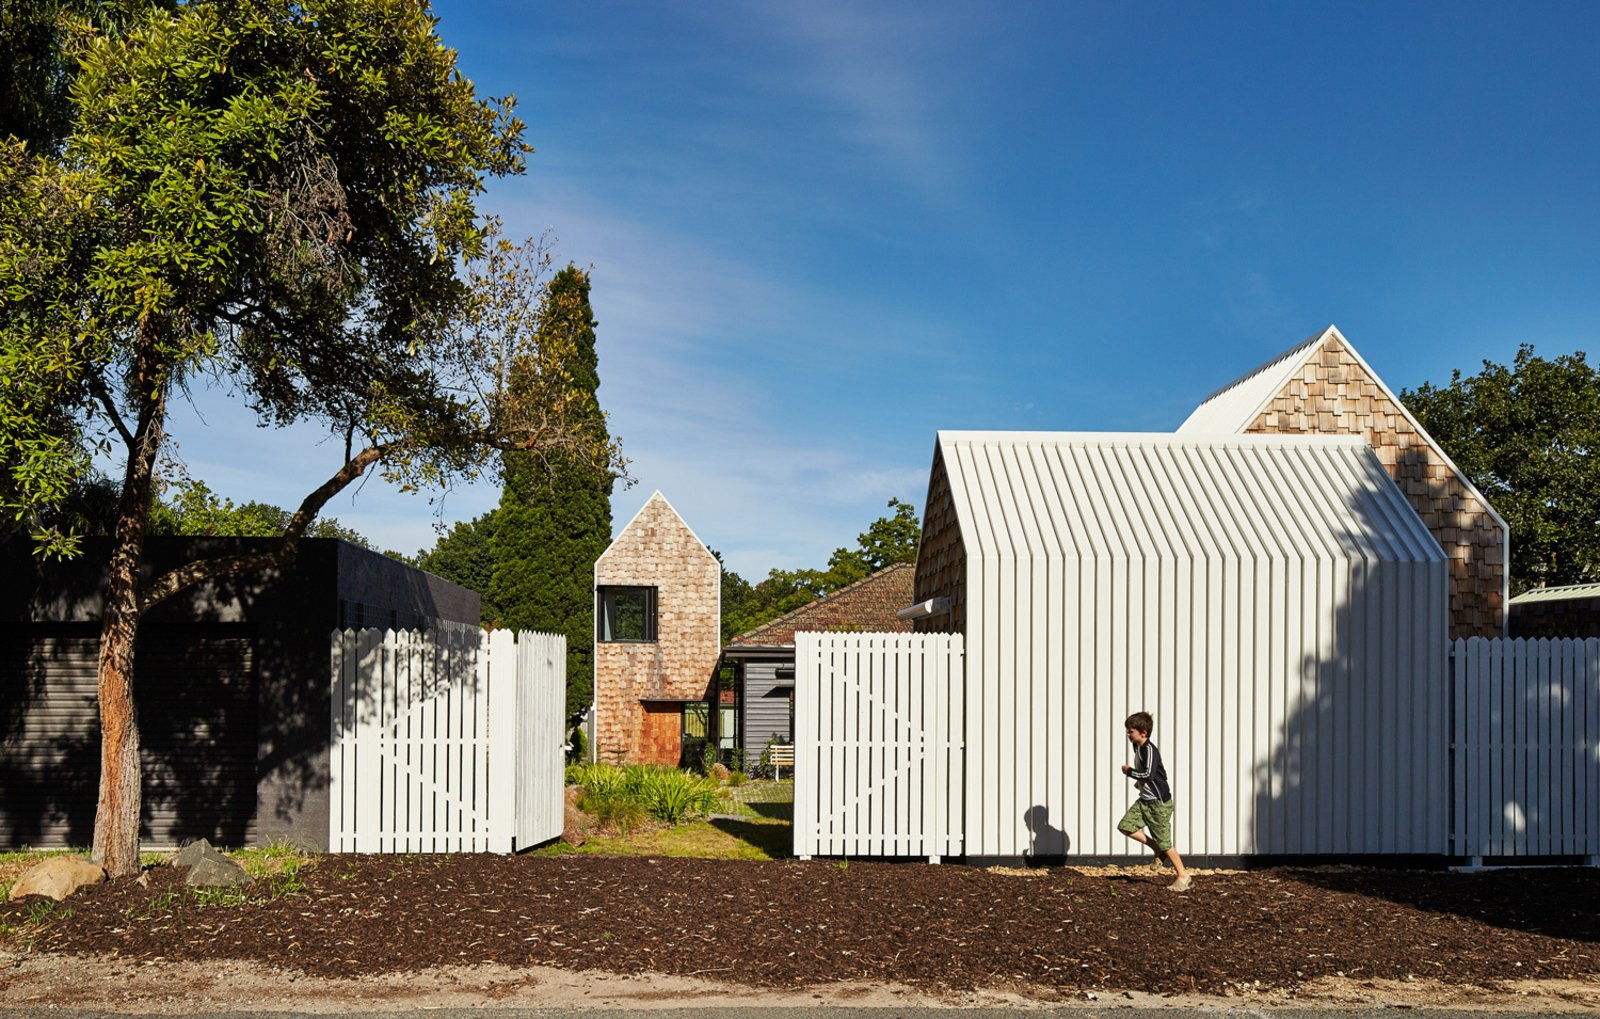 Photo 1 of 12 in This Transformed Melbourne House Resembles a Quirky Village